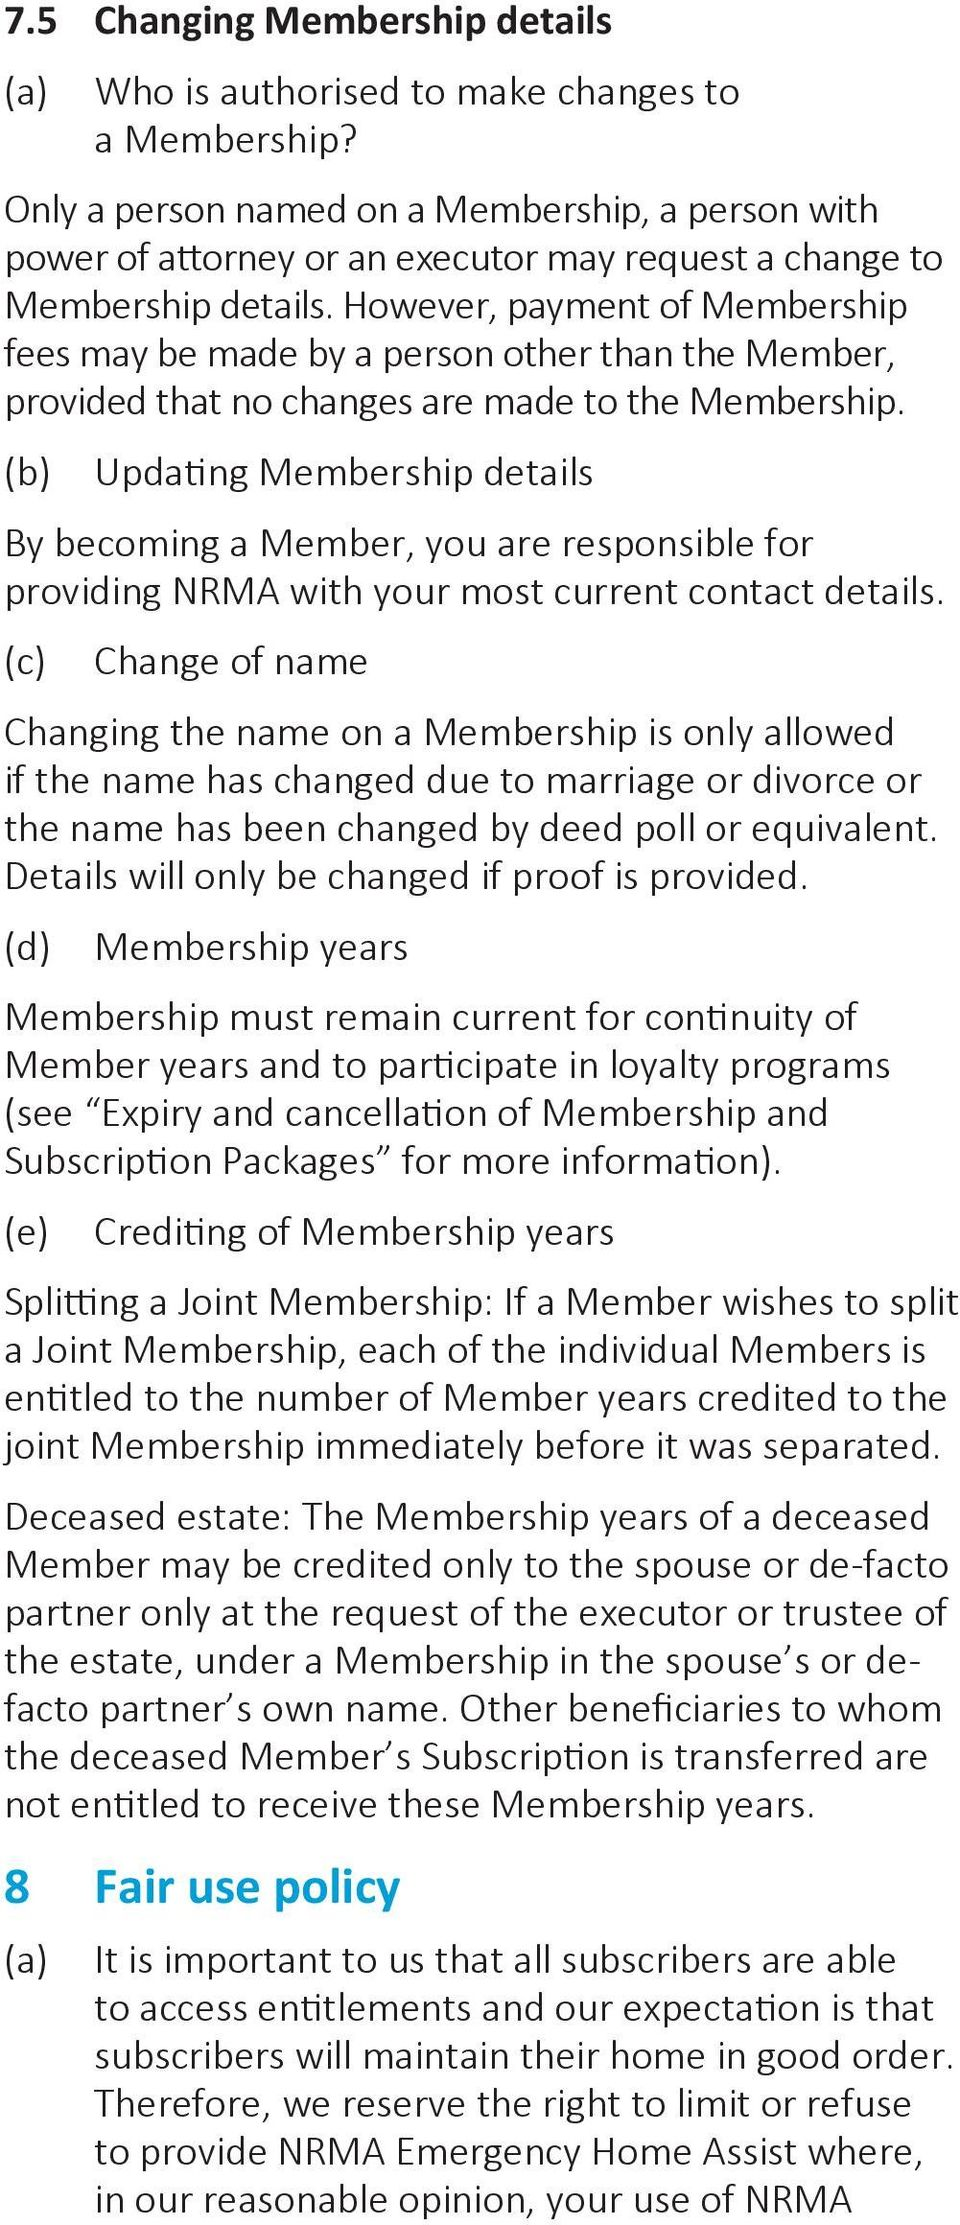 However, payment of Membership fees may be made by a person other than the Member, provided that no changes are made to the Membership.